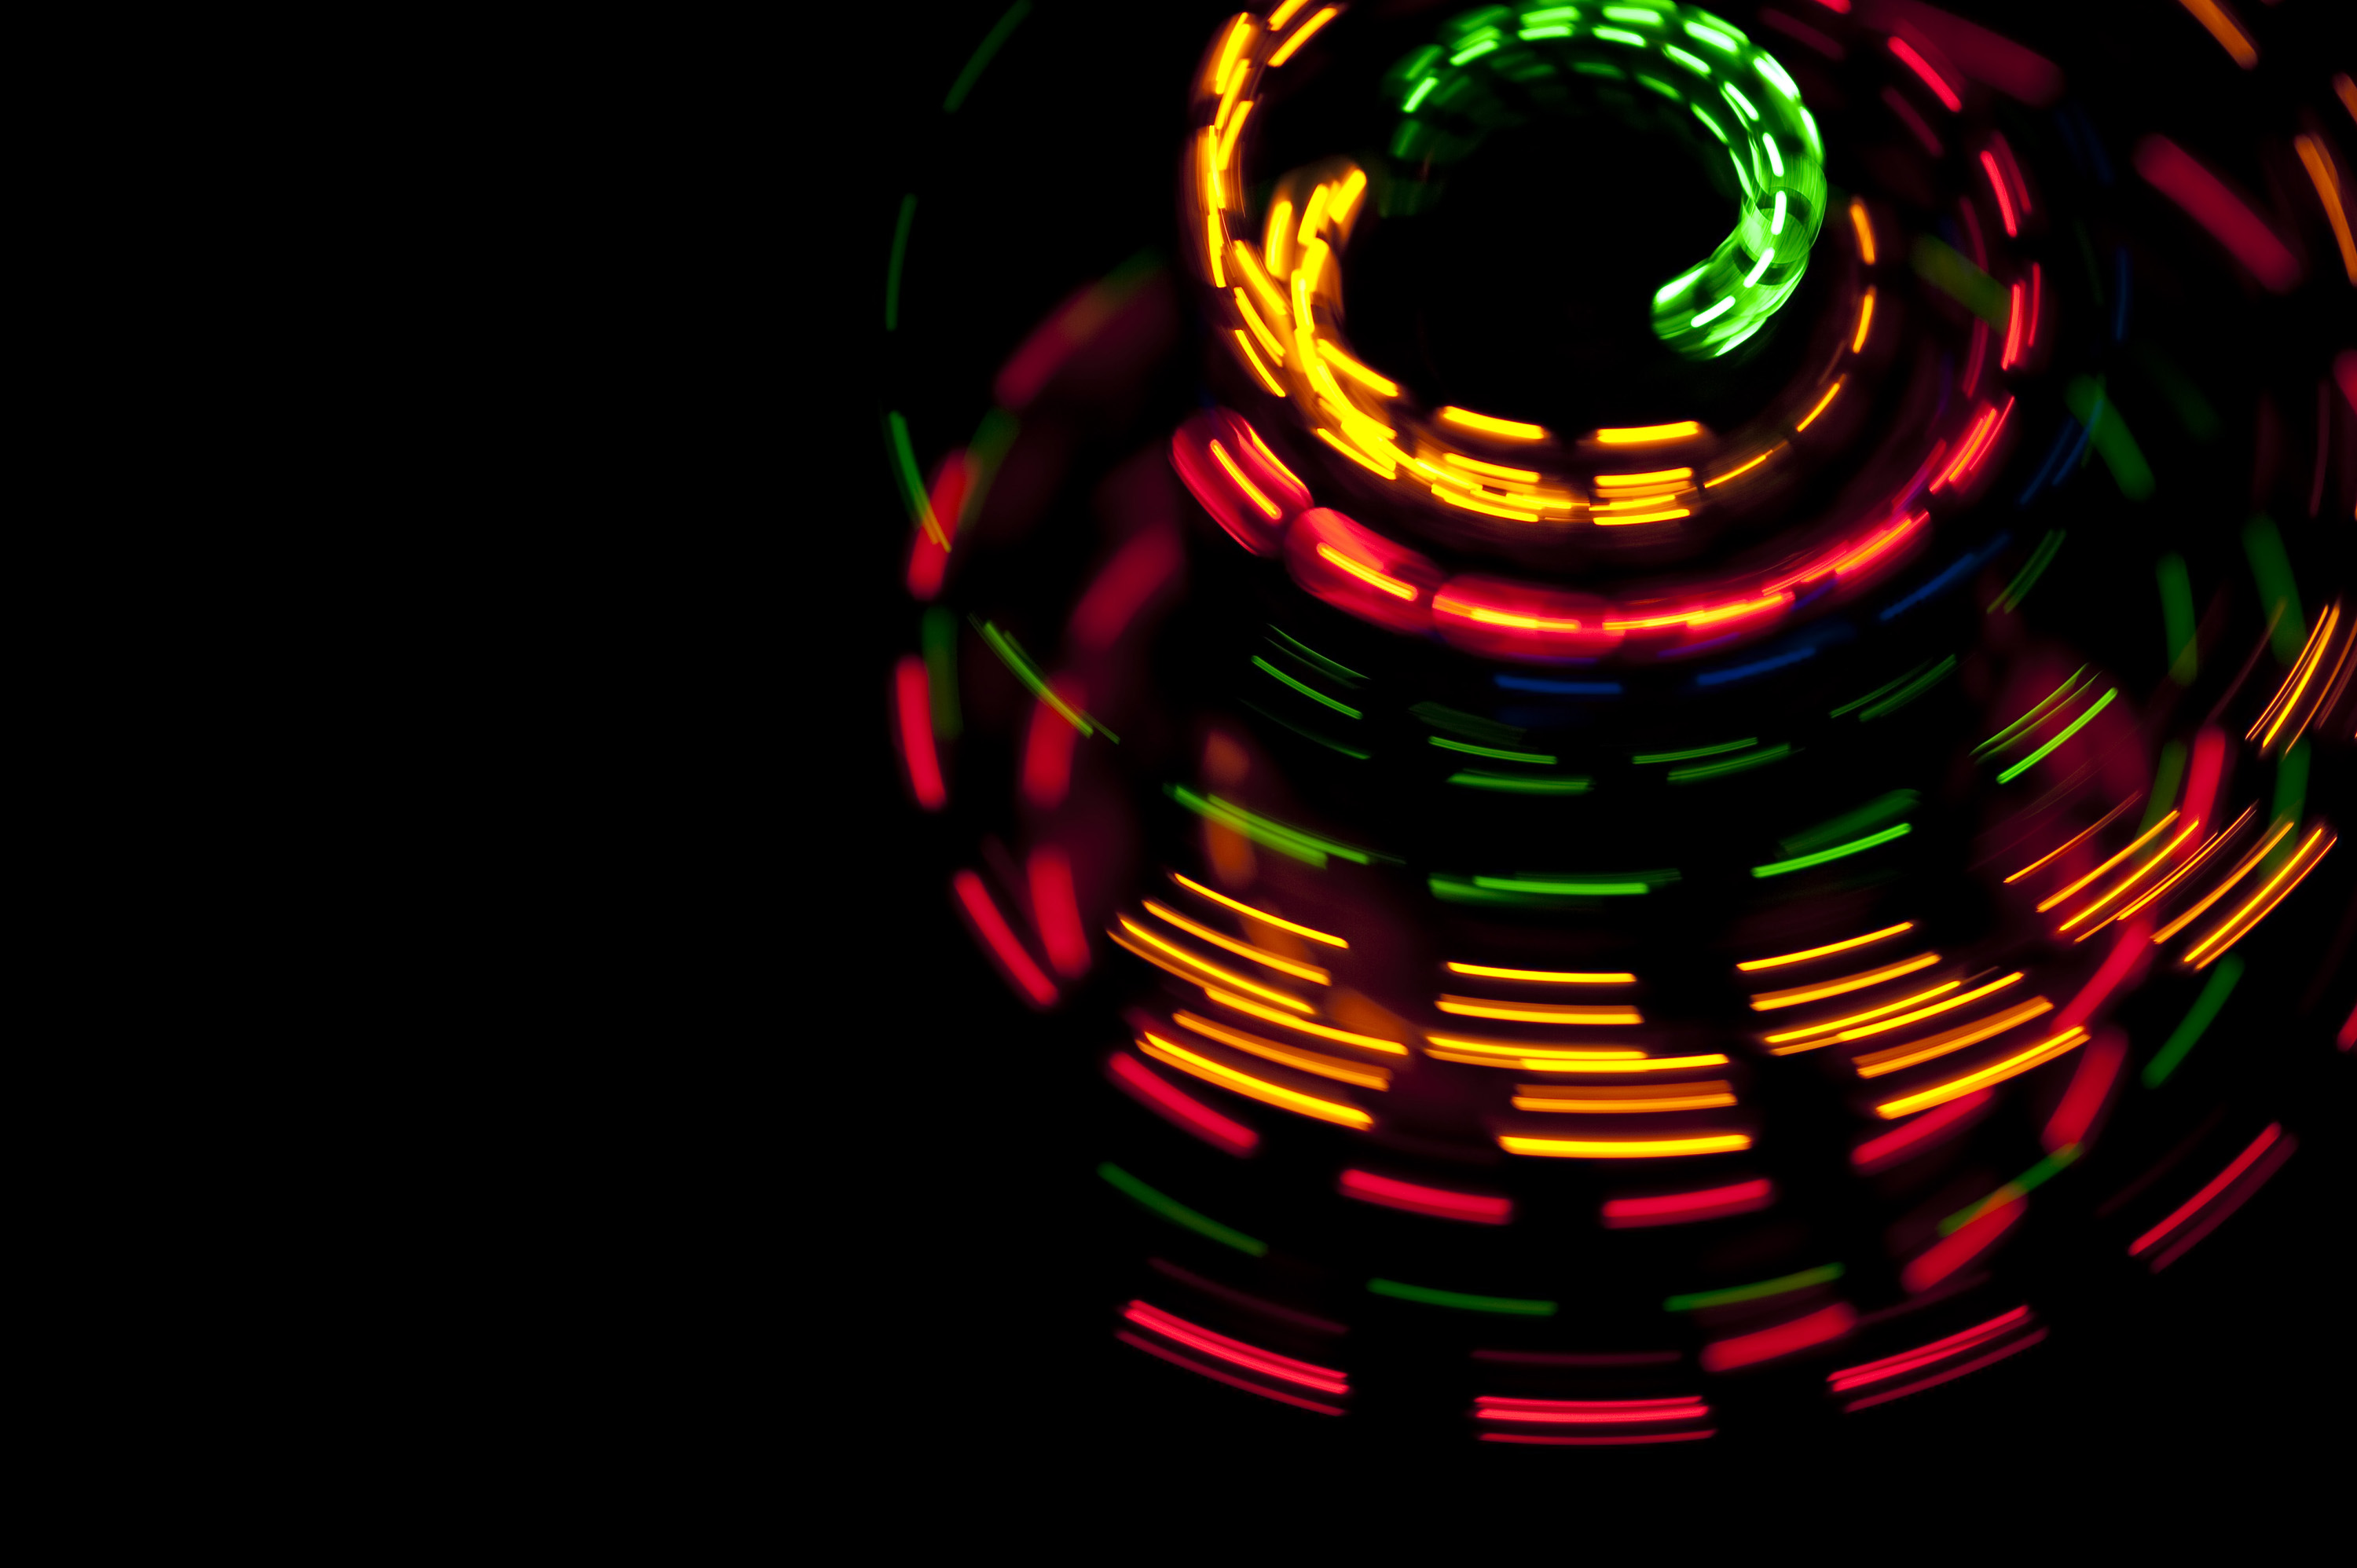 vividly colored dashed glowing lines creating  a circular rotating effect pattern